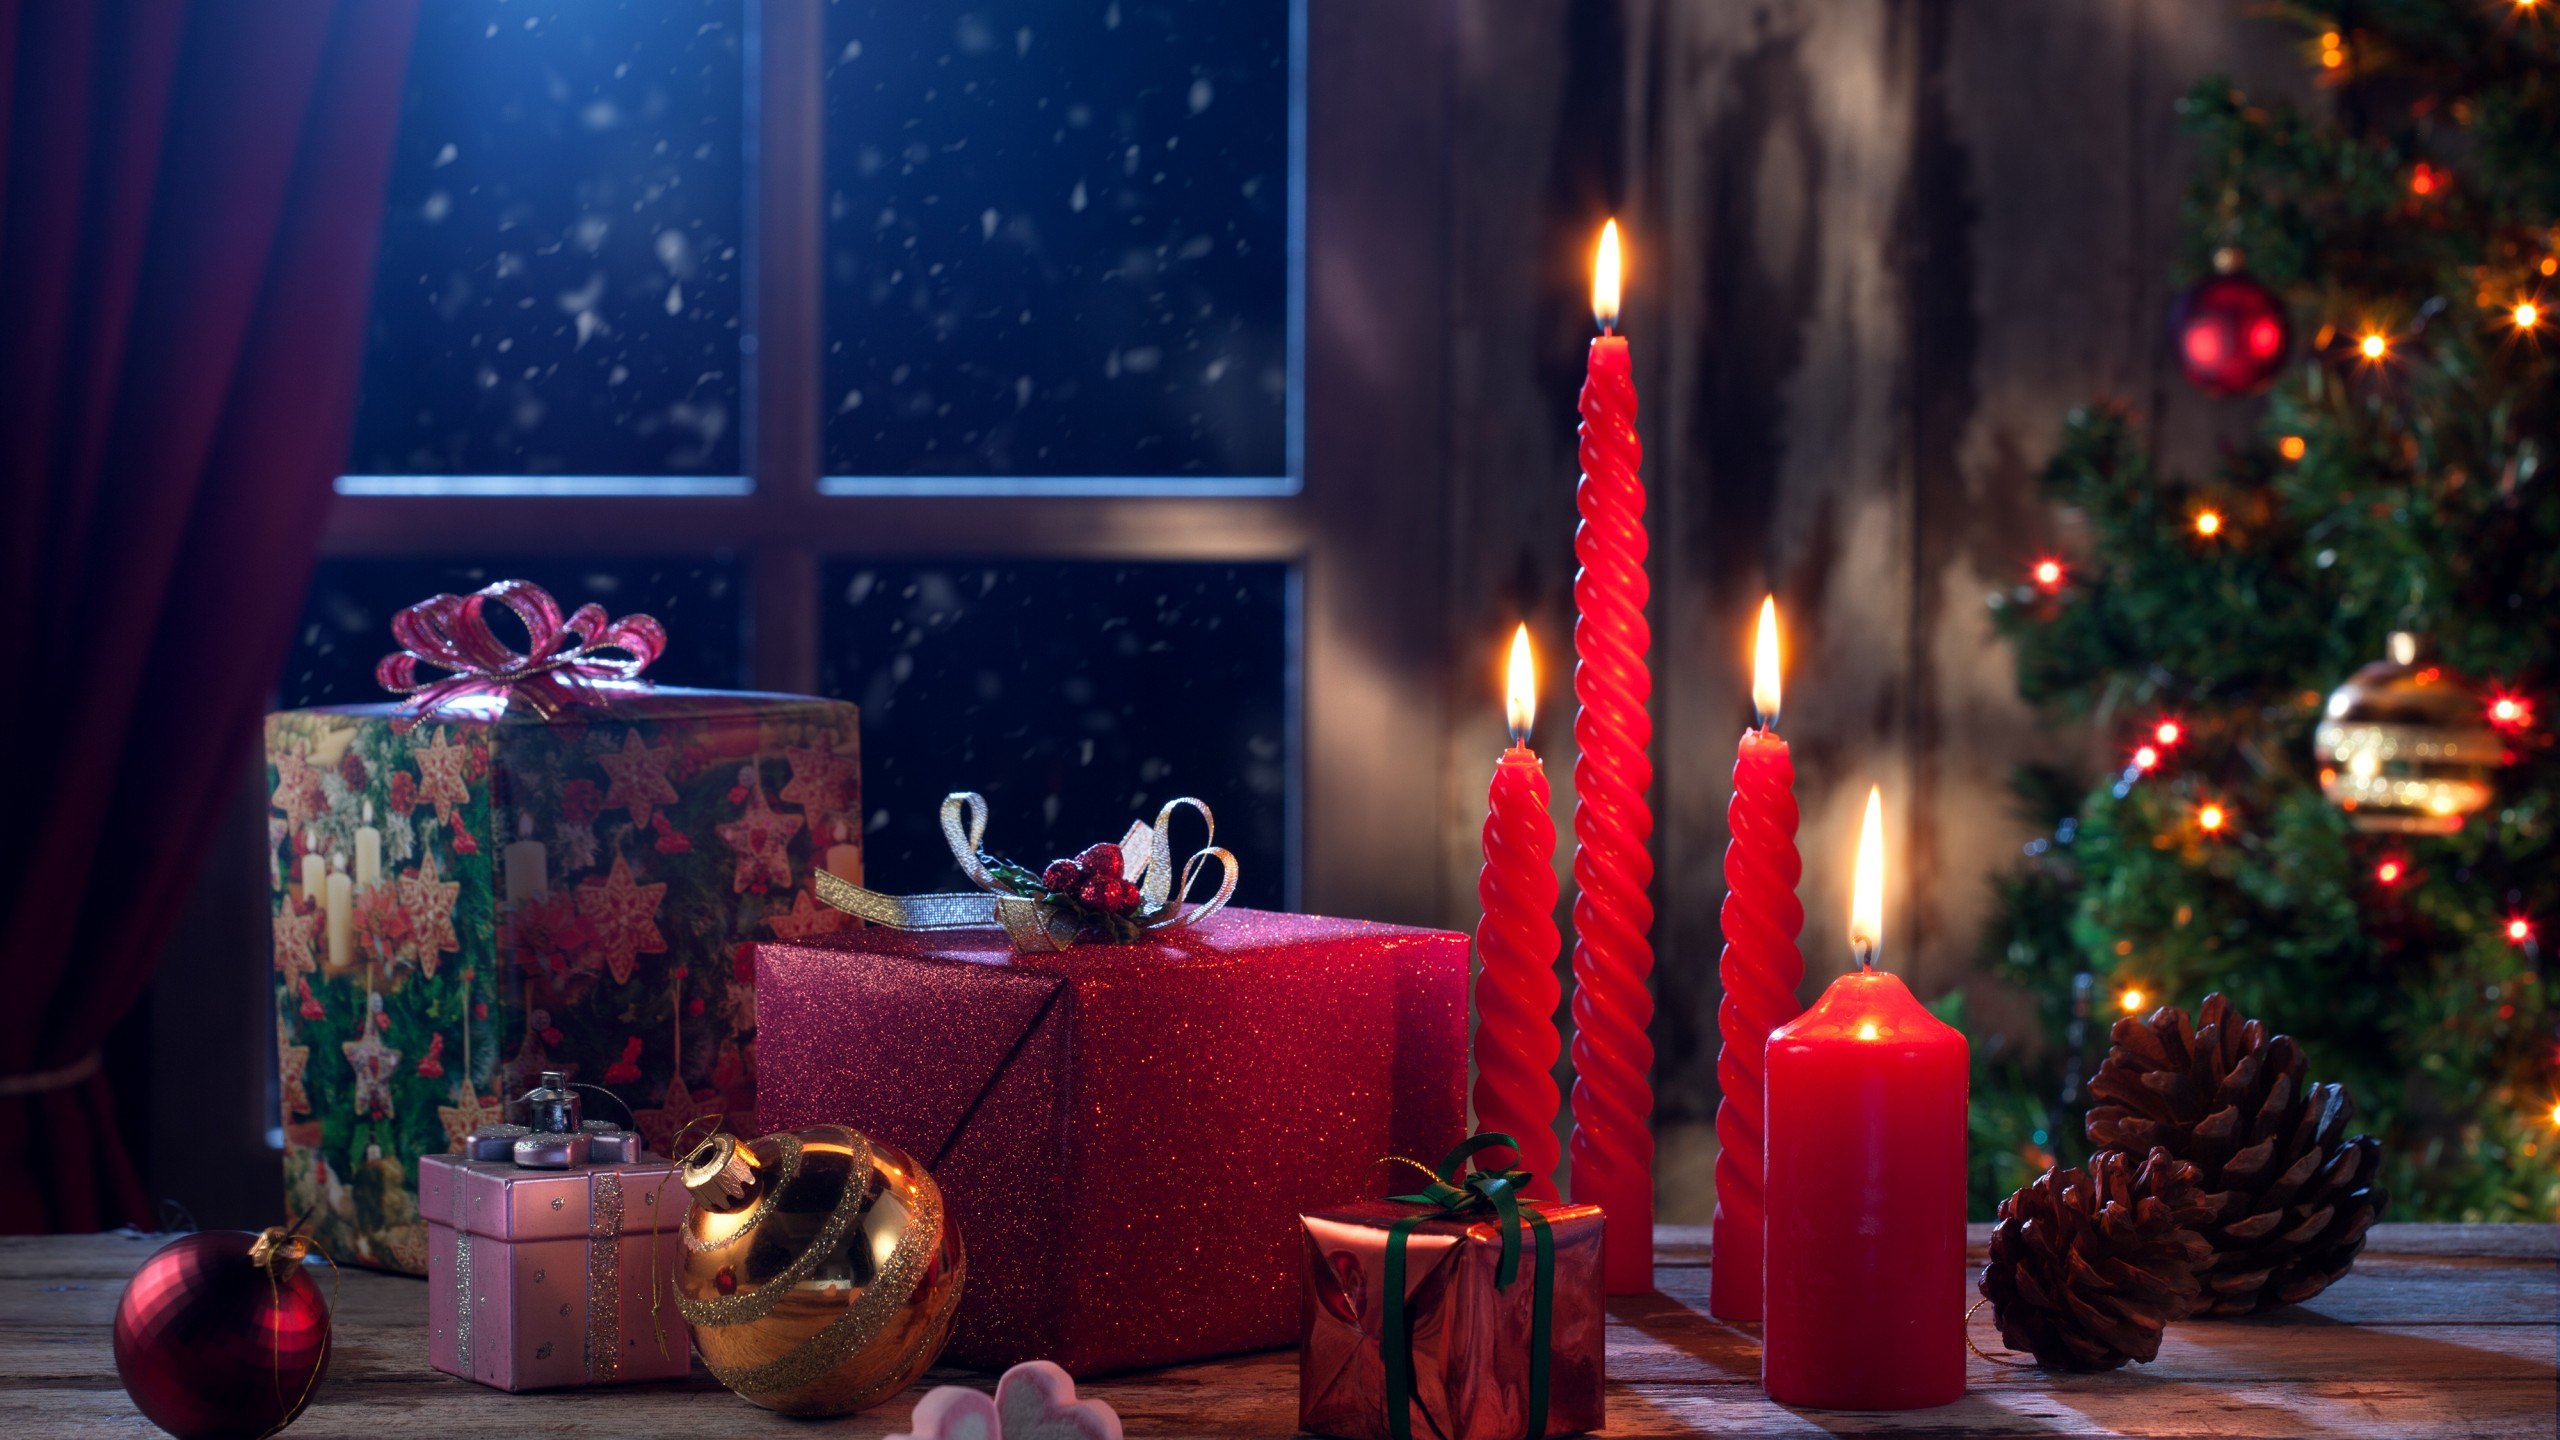 Christmas eve presents gifts Wallpaper 2560x1440